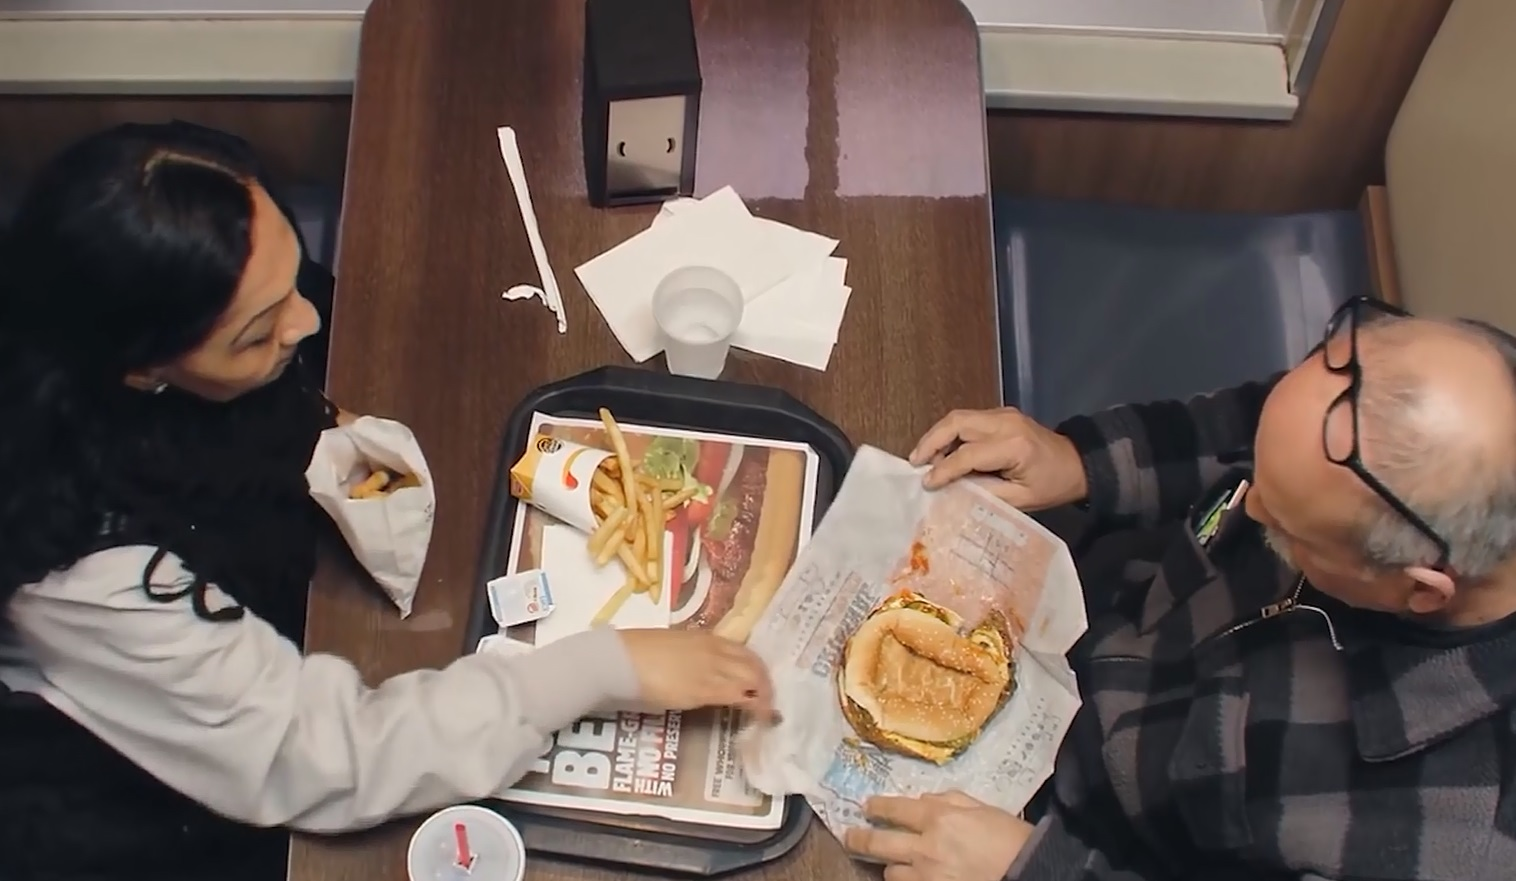 Burger King joined an anti-bullying group to produce a powerful message against bullying. (CNN Newsource)